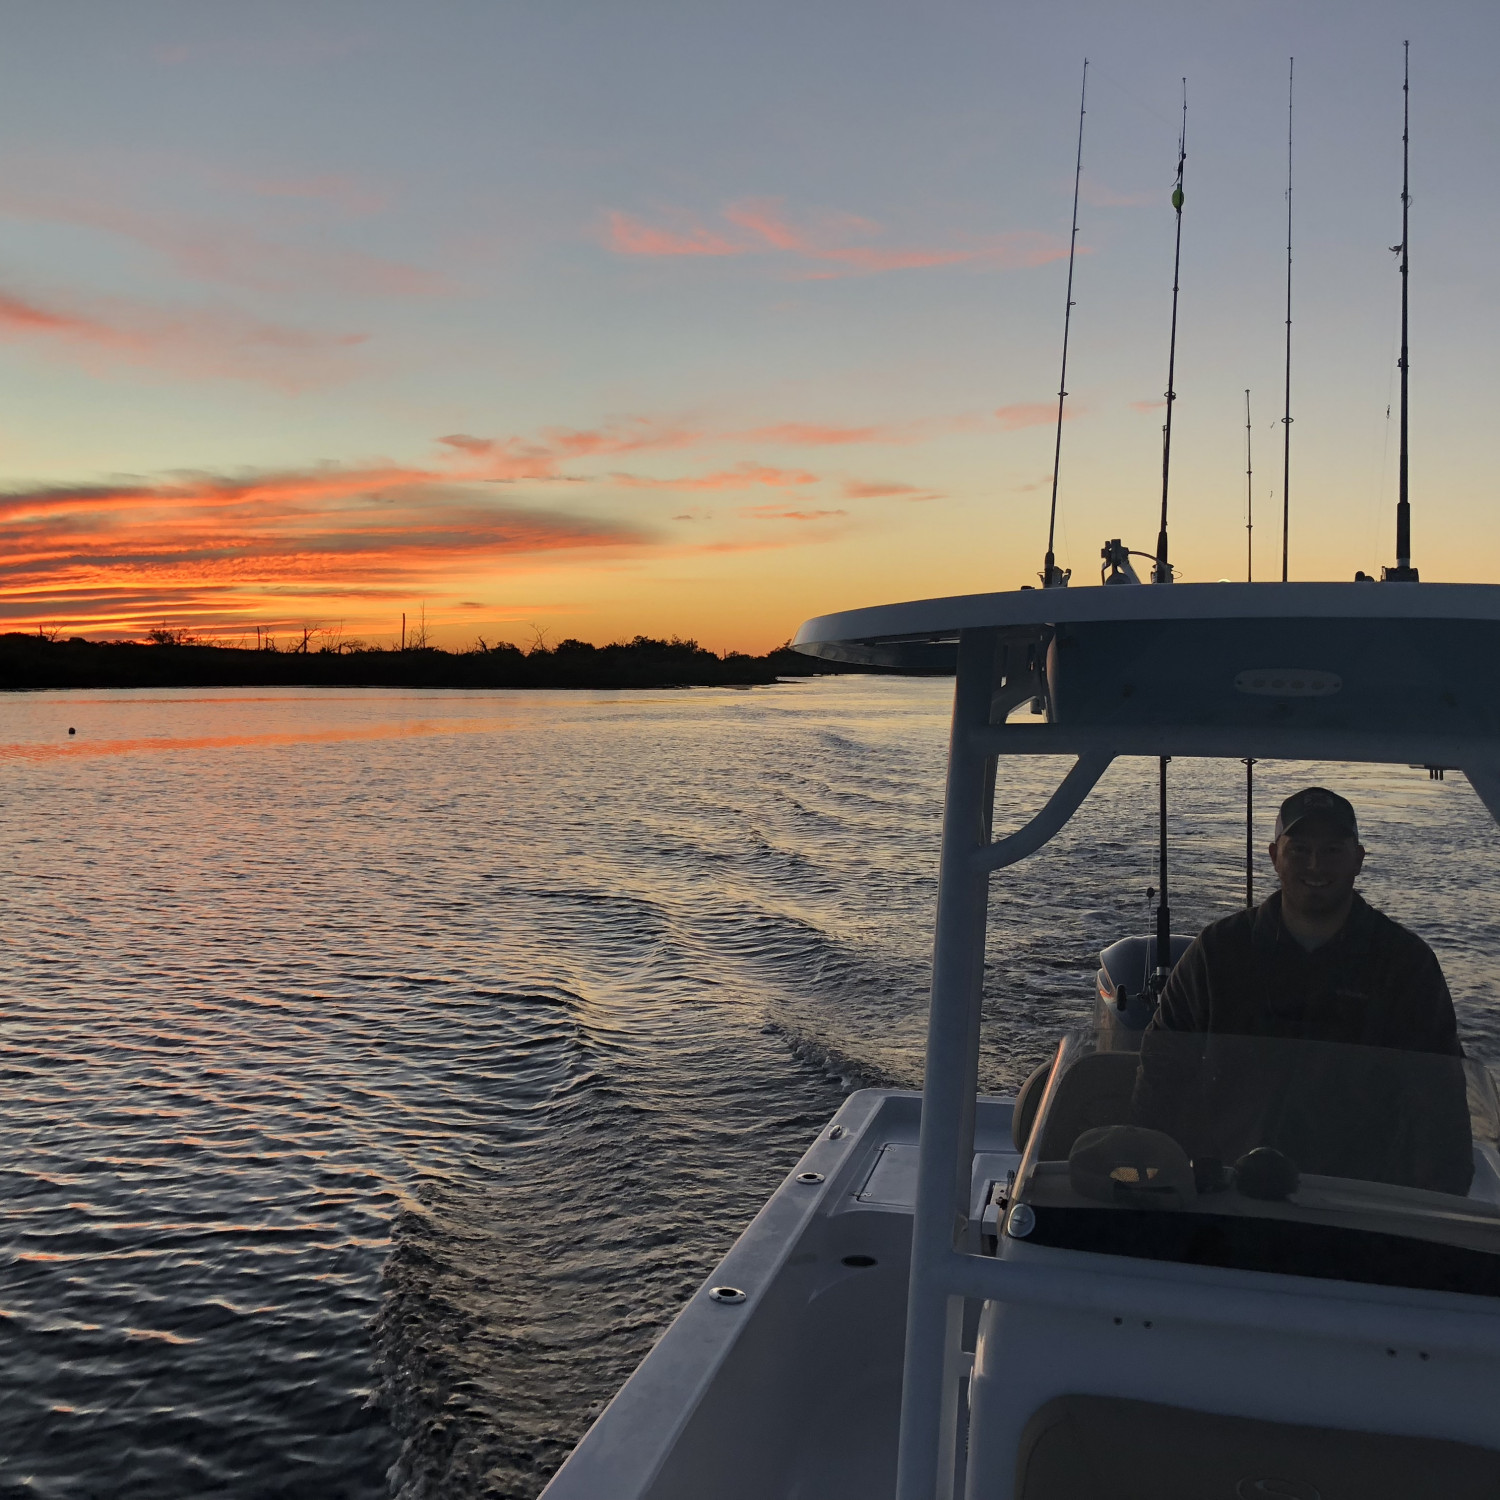 Title: First offshore trip - On board their Sportsman Masters 247 Bay Boat - Location: Homosassa Florida. Participating in the Photo Contest #SportsmanDecember2017